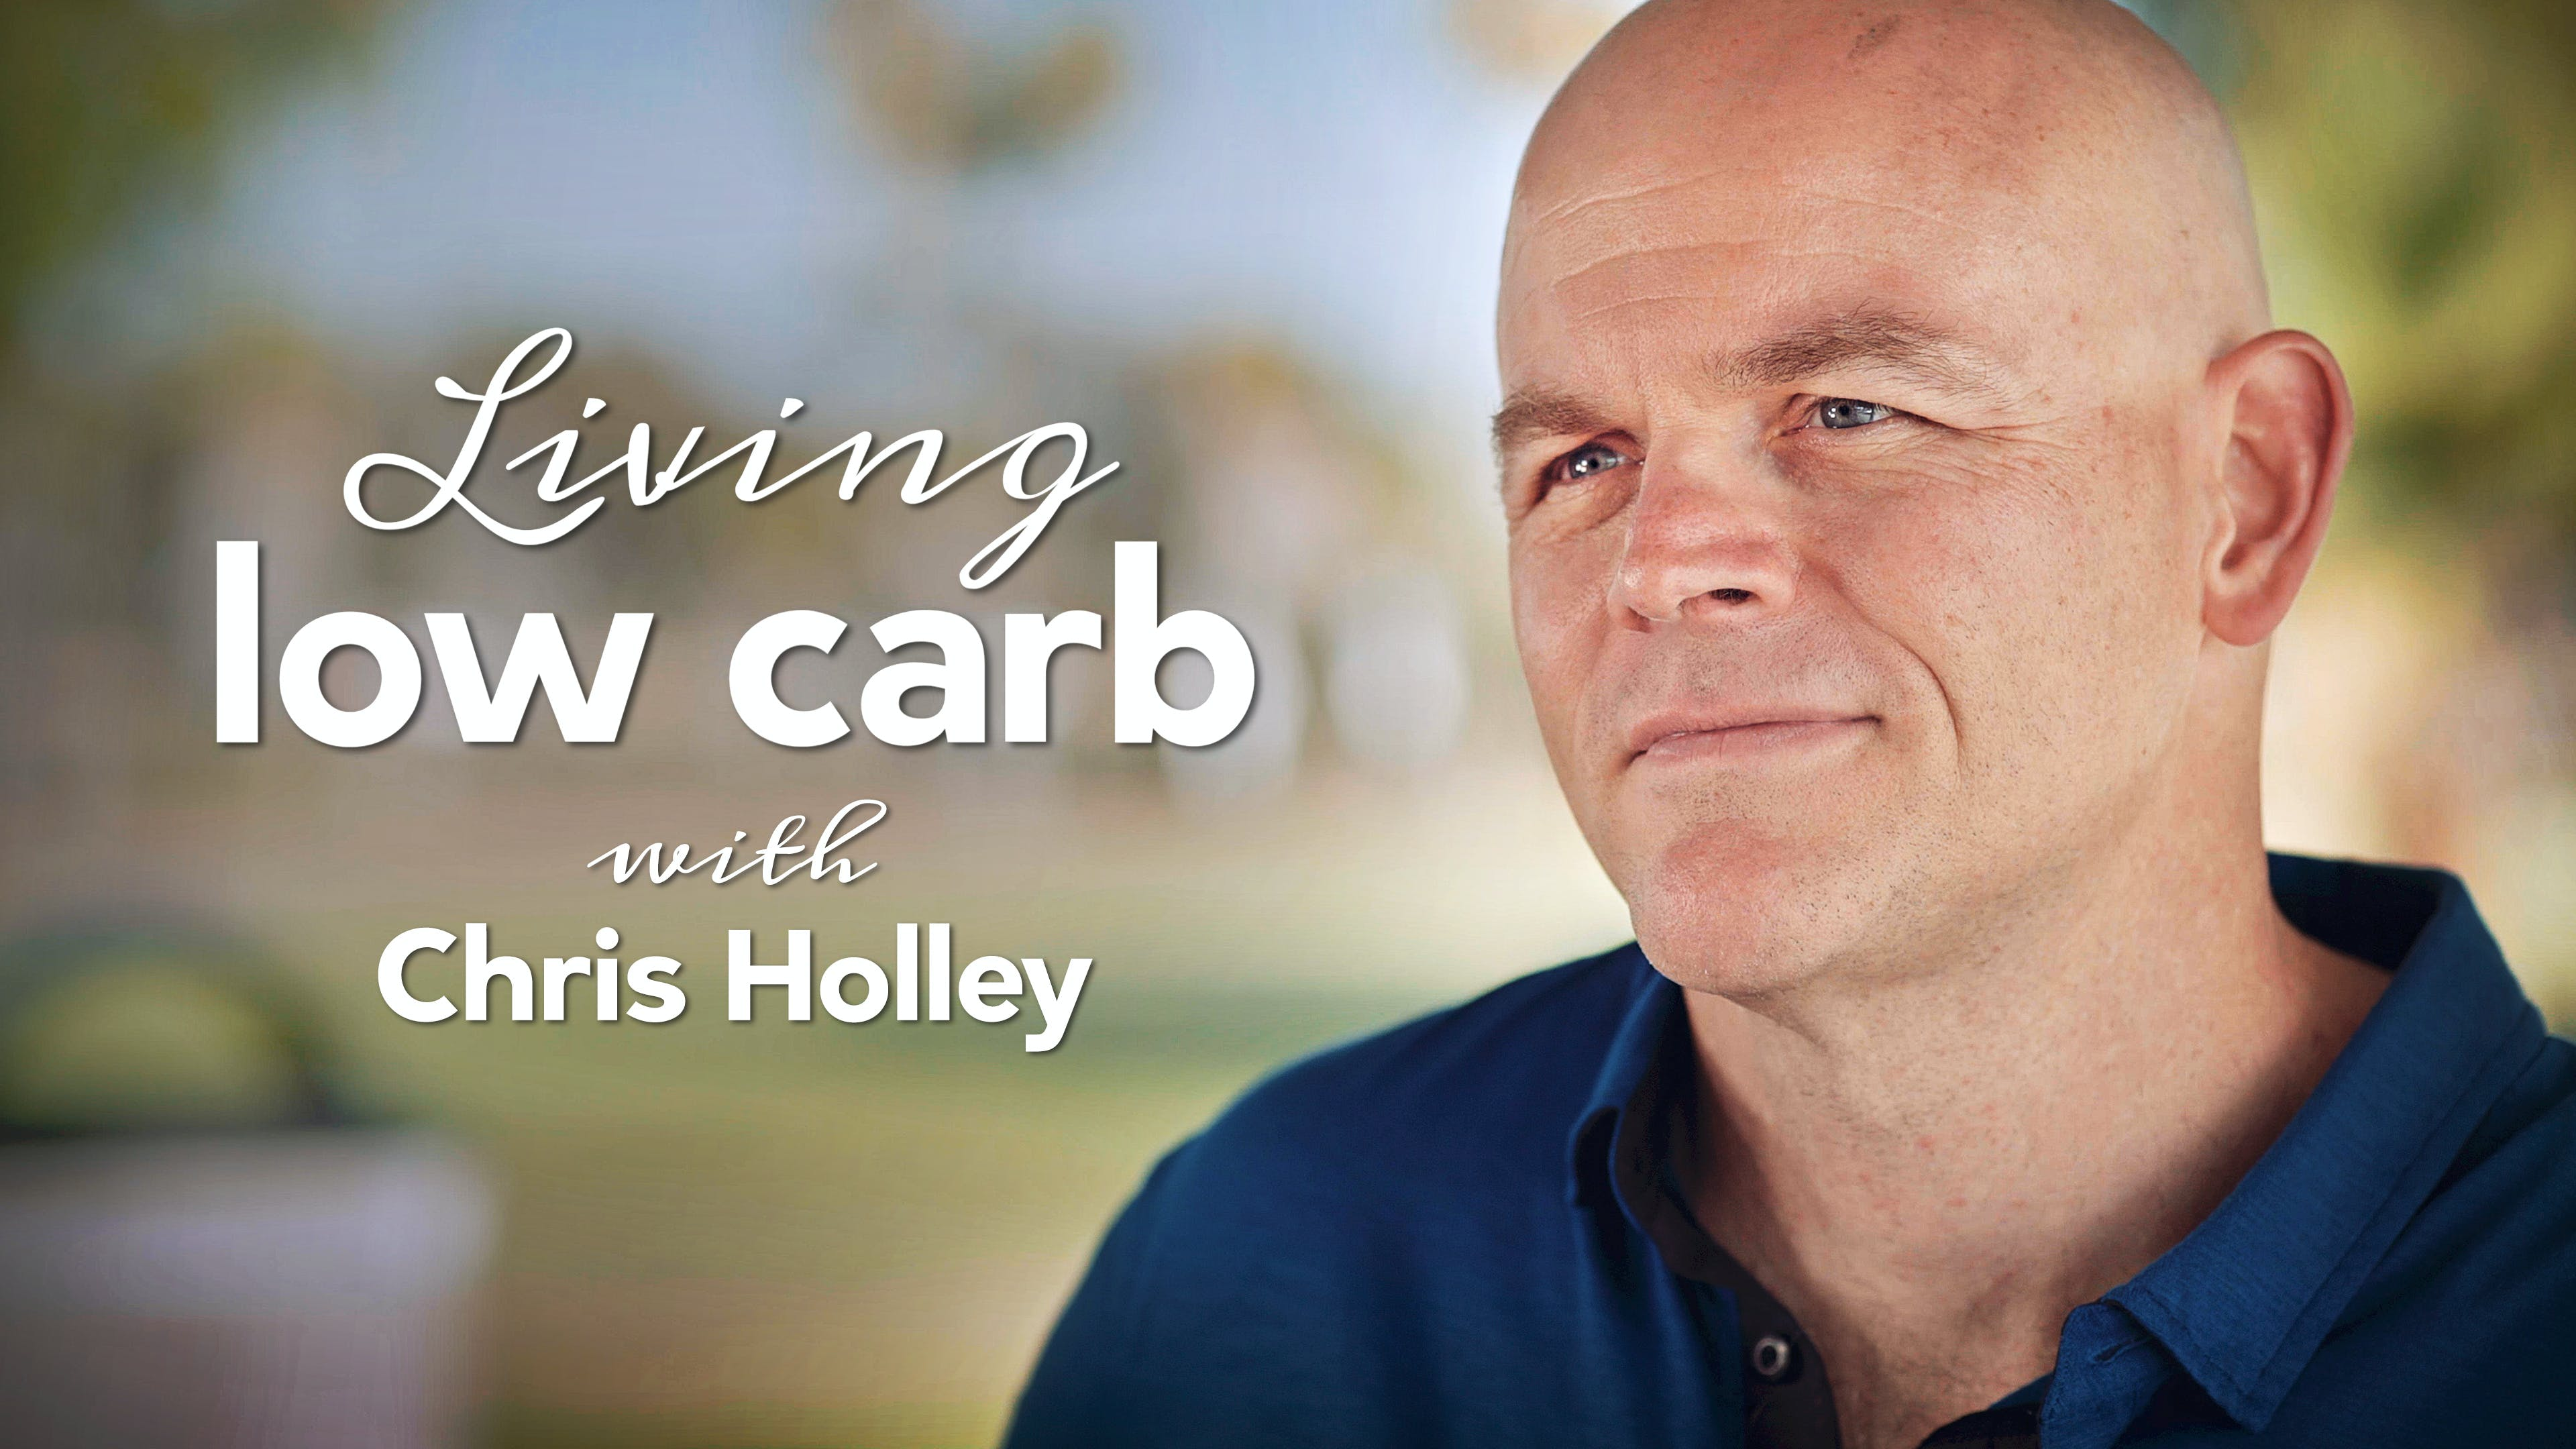 How IRONMAN athlete Chris Holley lost 200 lbs